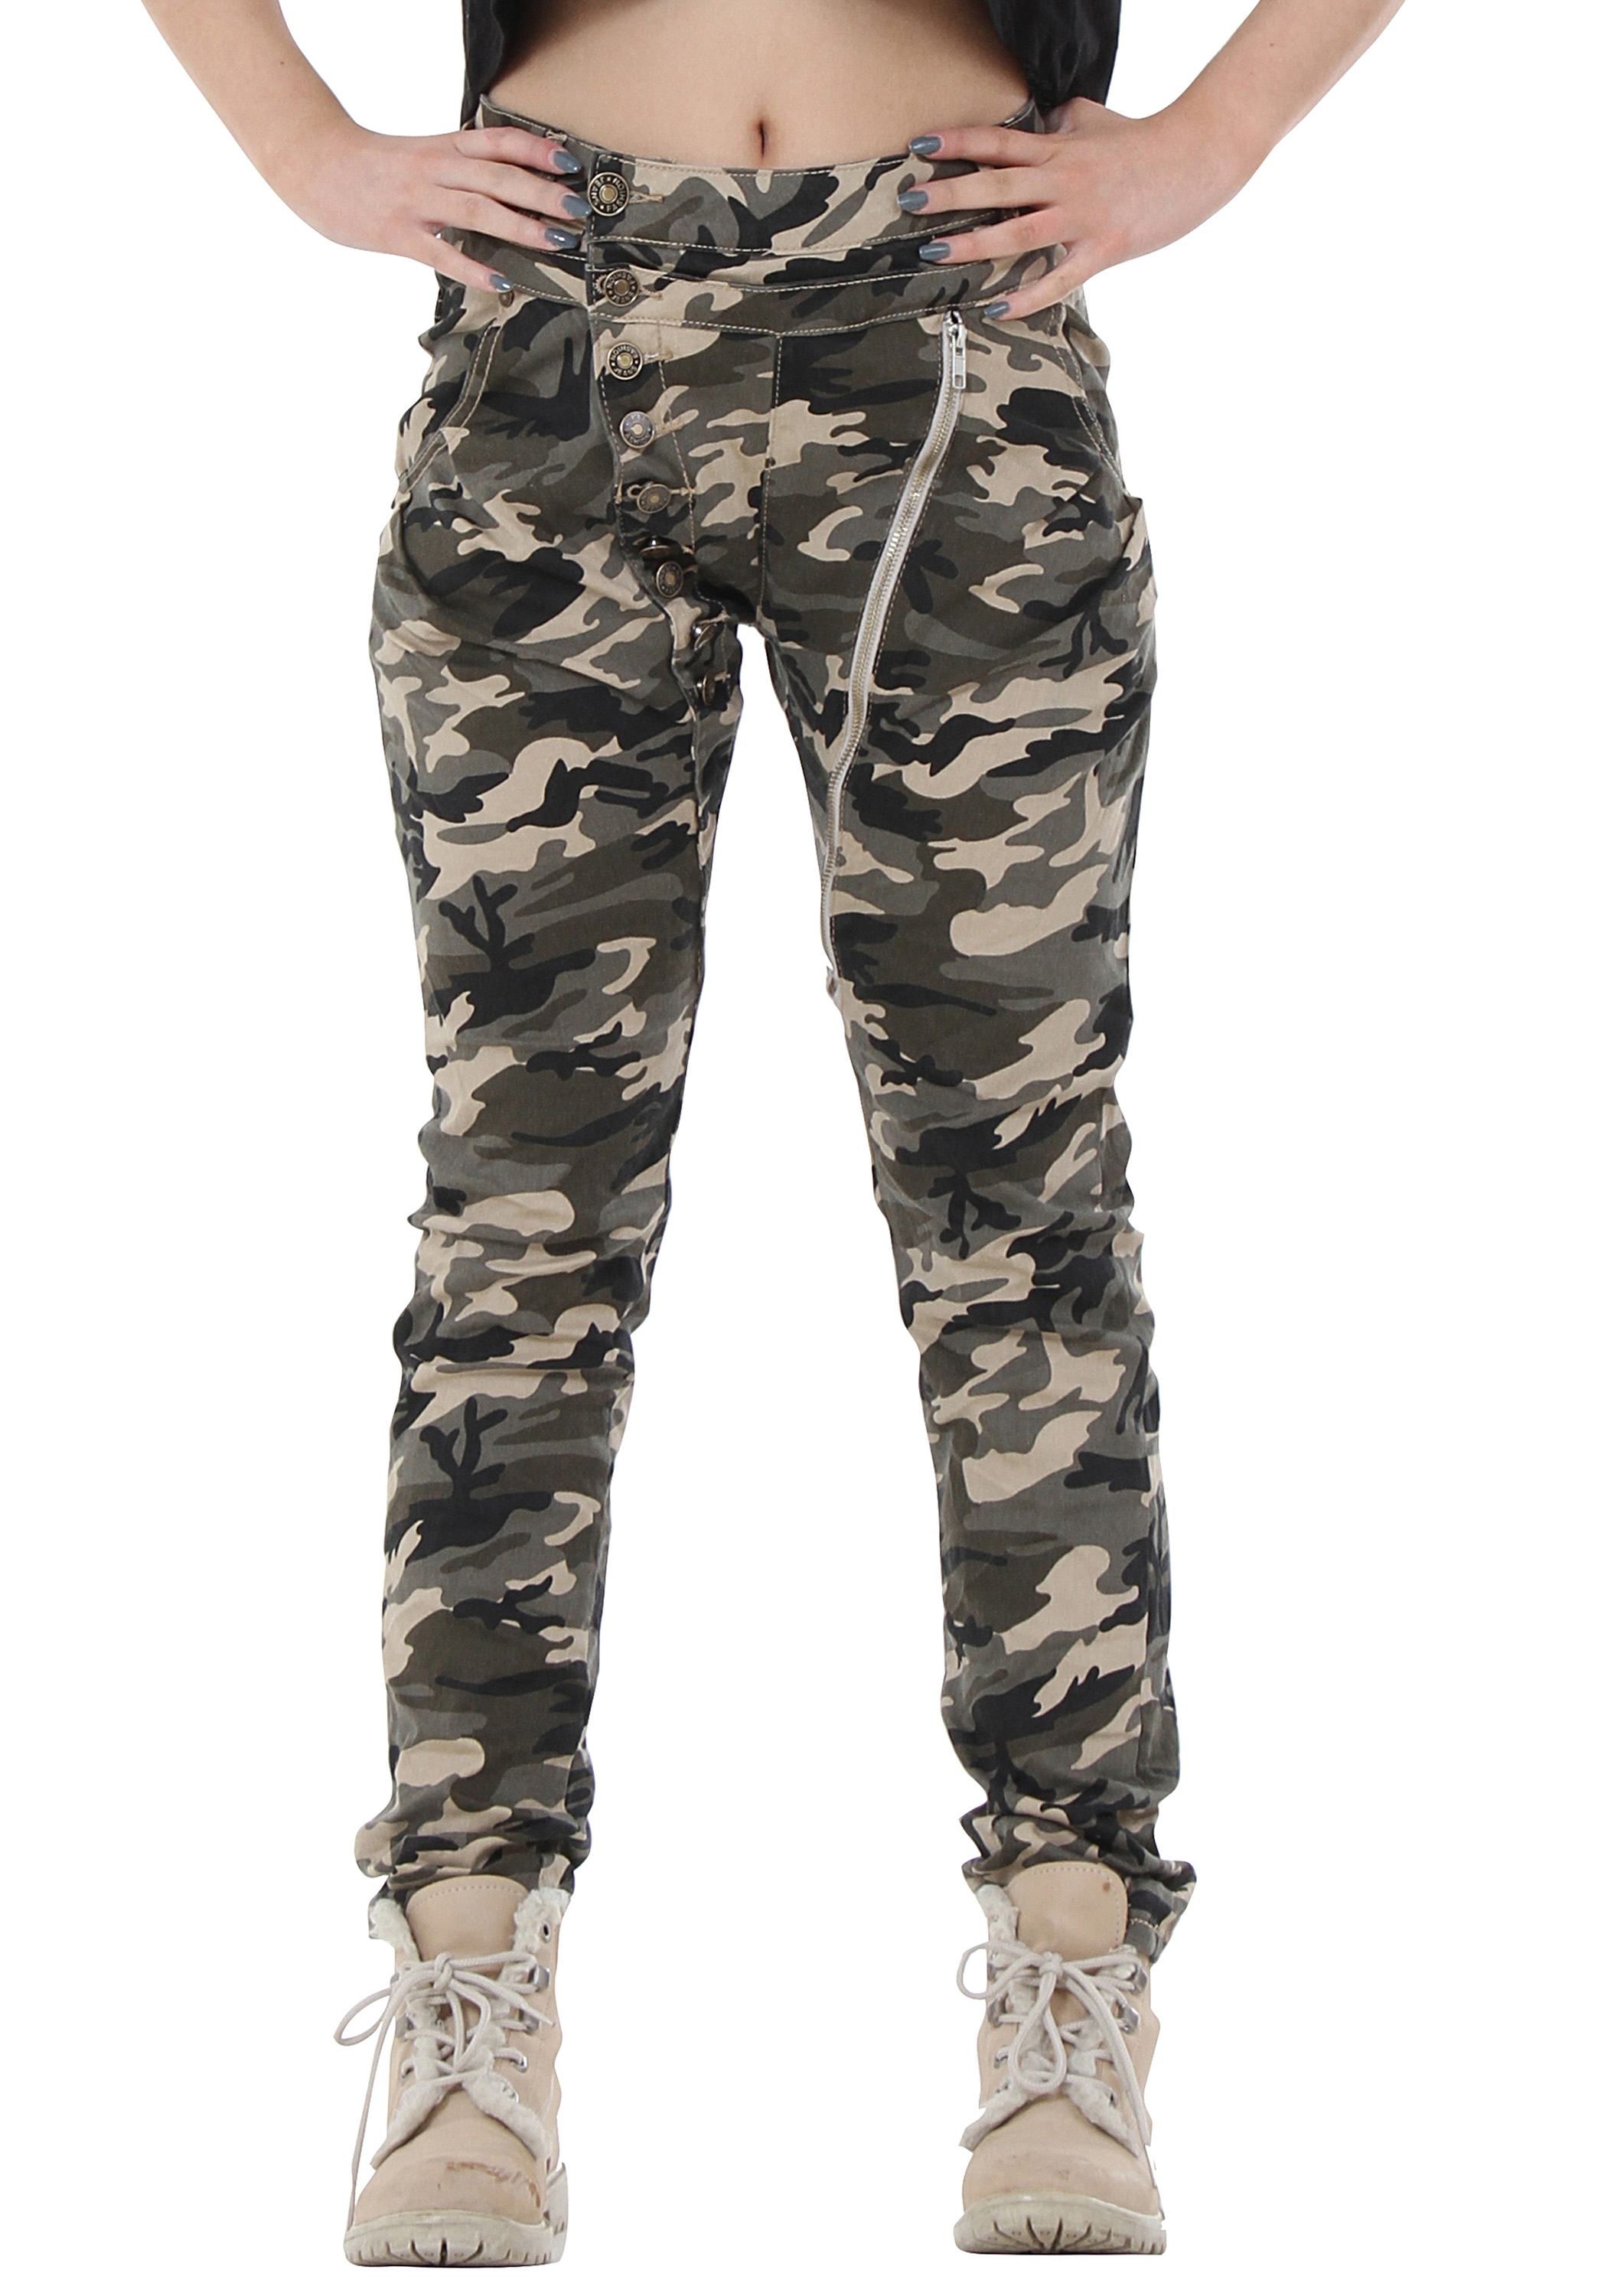 New Womens Army Military Camouflage Trousers Slim Fitted ...